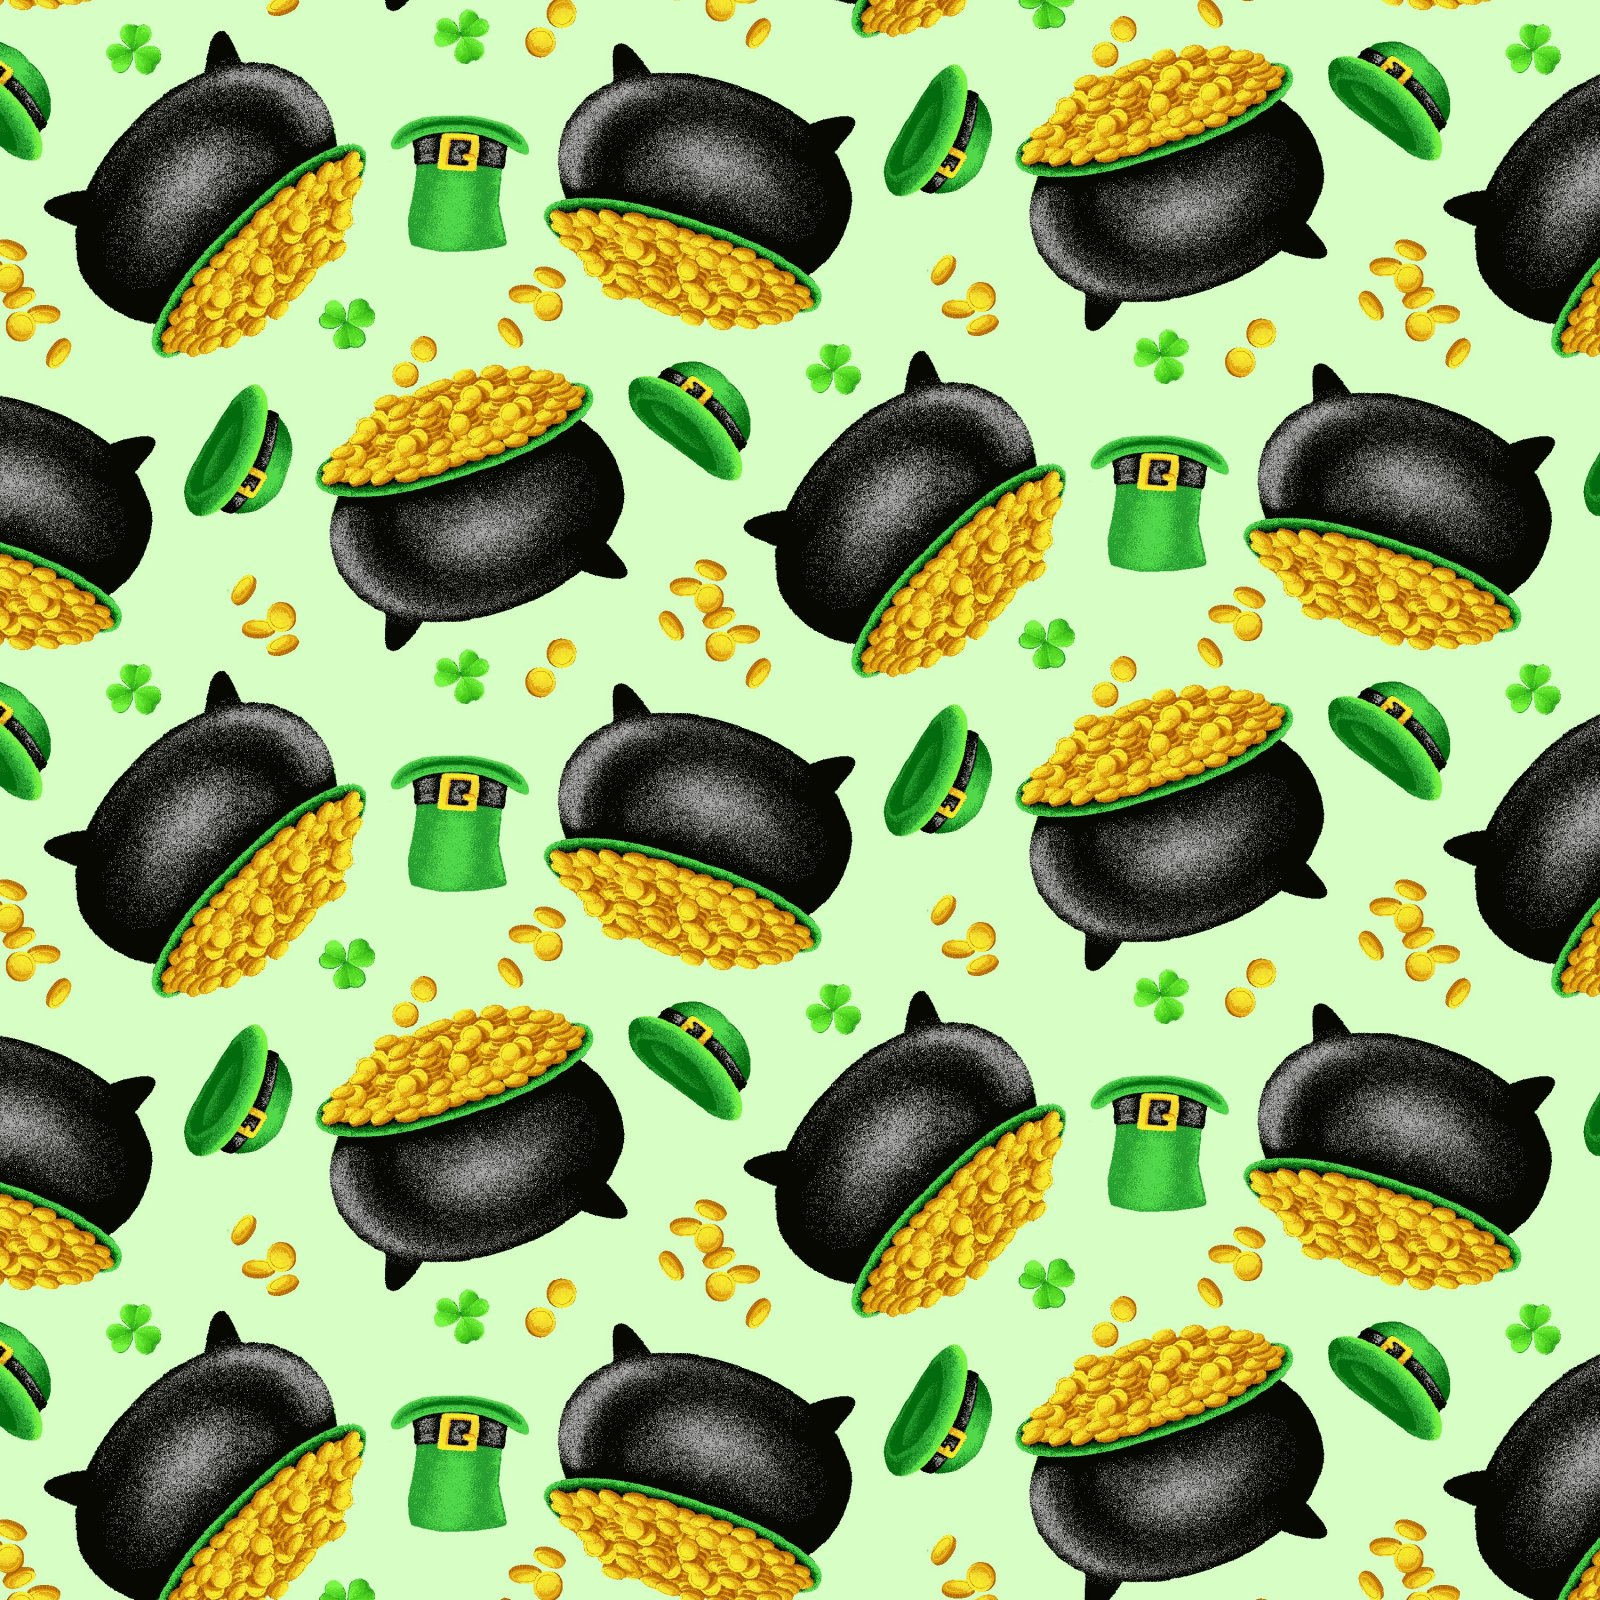 HG-Pot of Gold 9367-69 Green - Tossed Pot of Gold